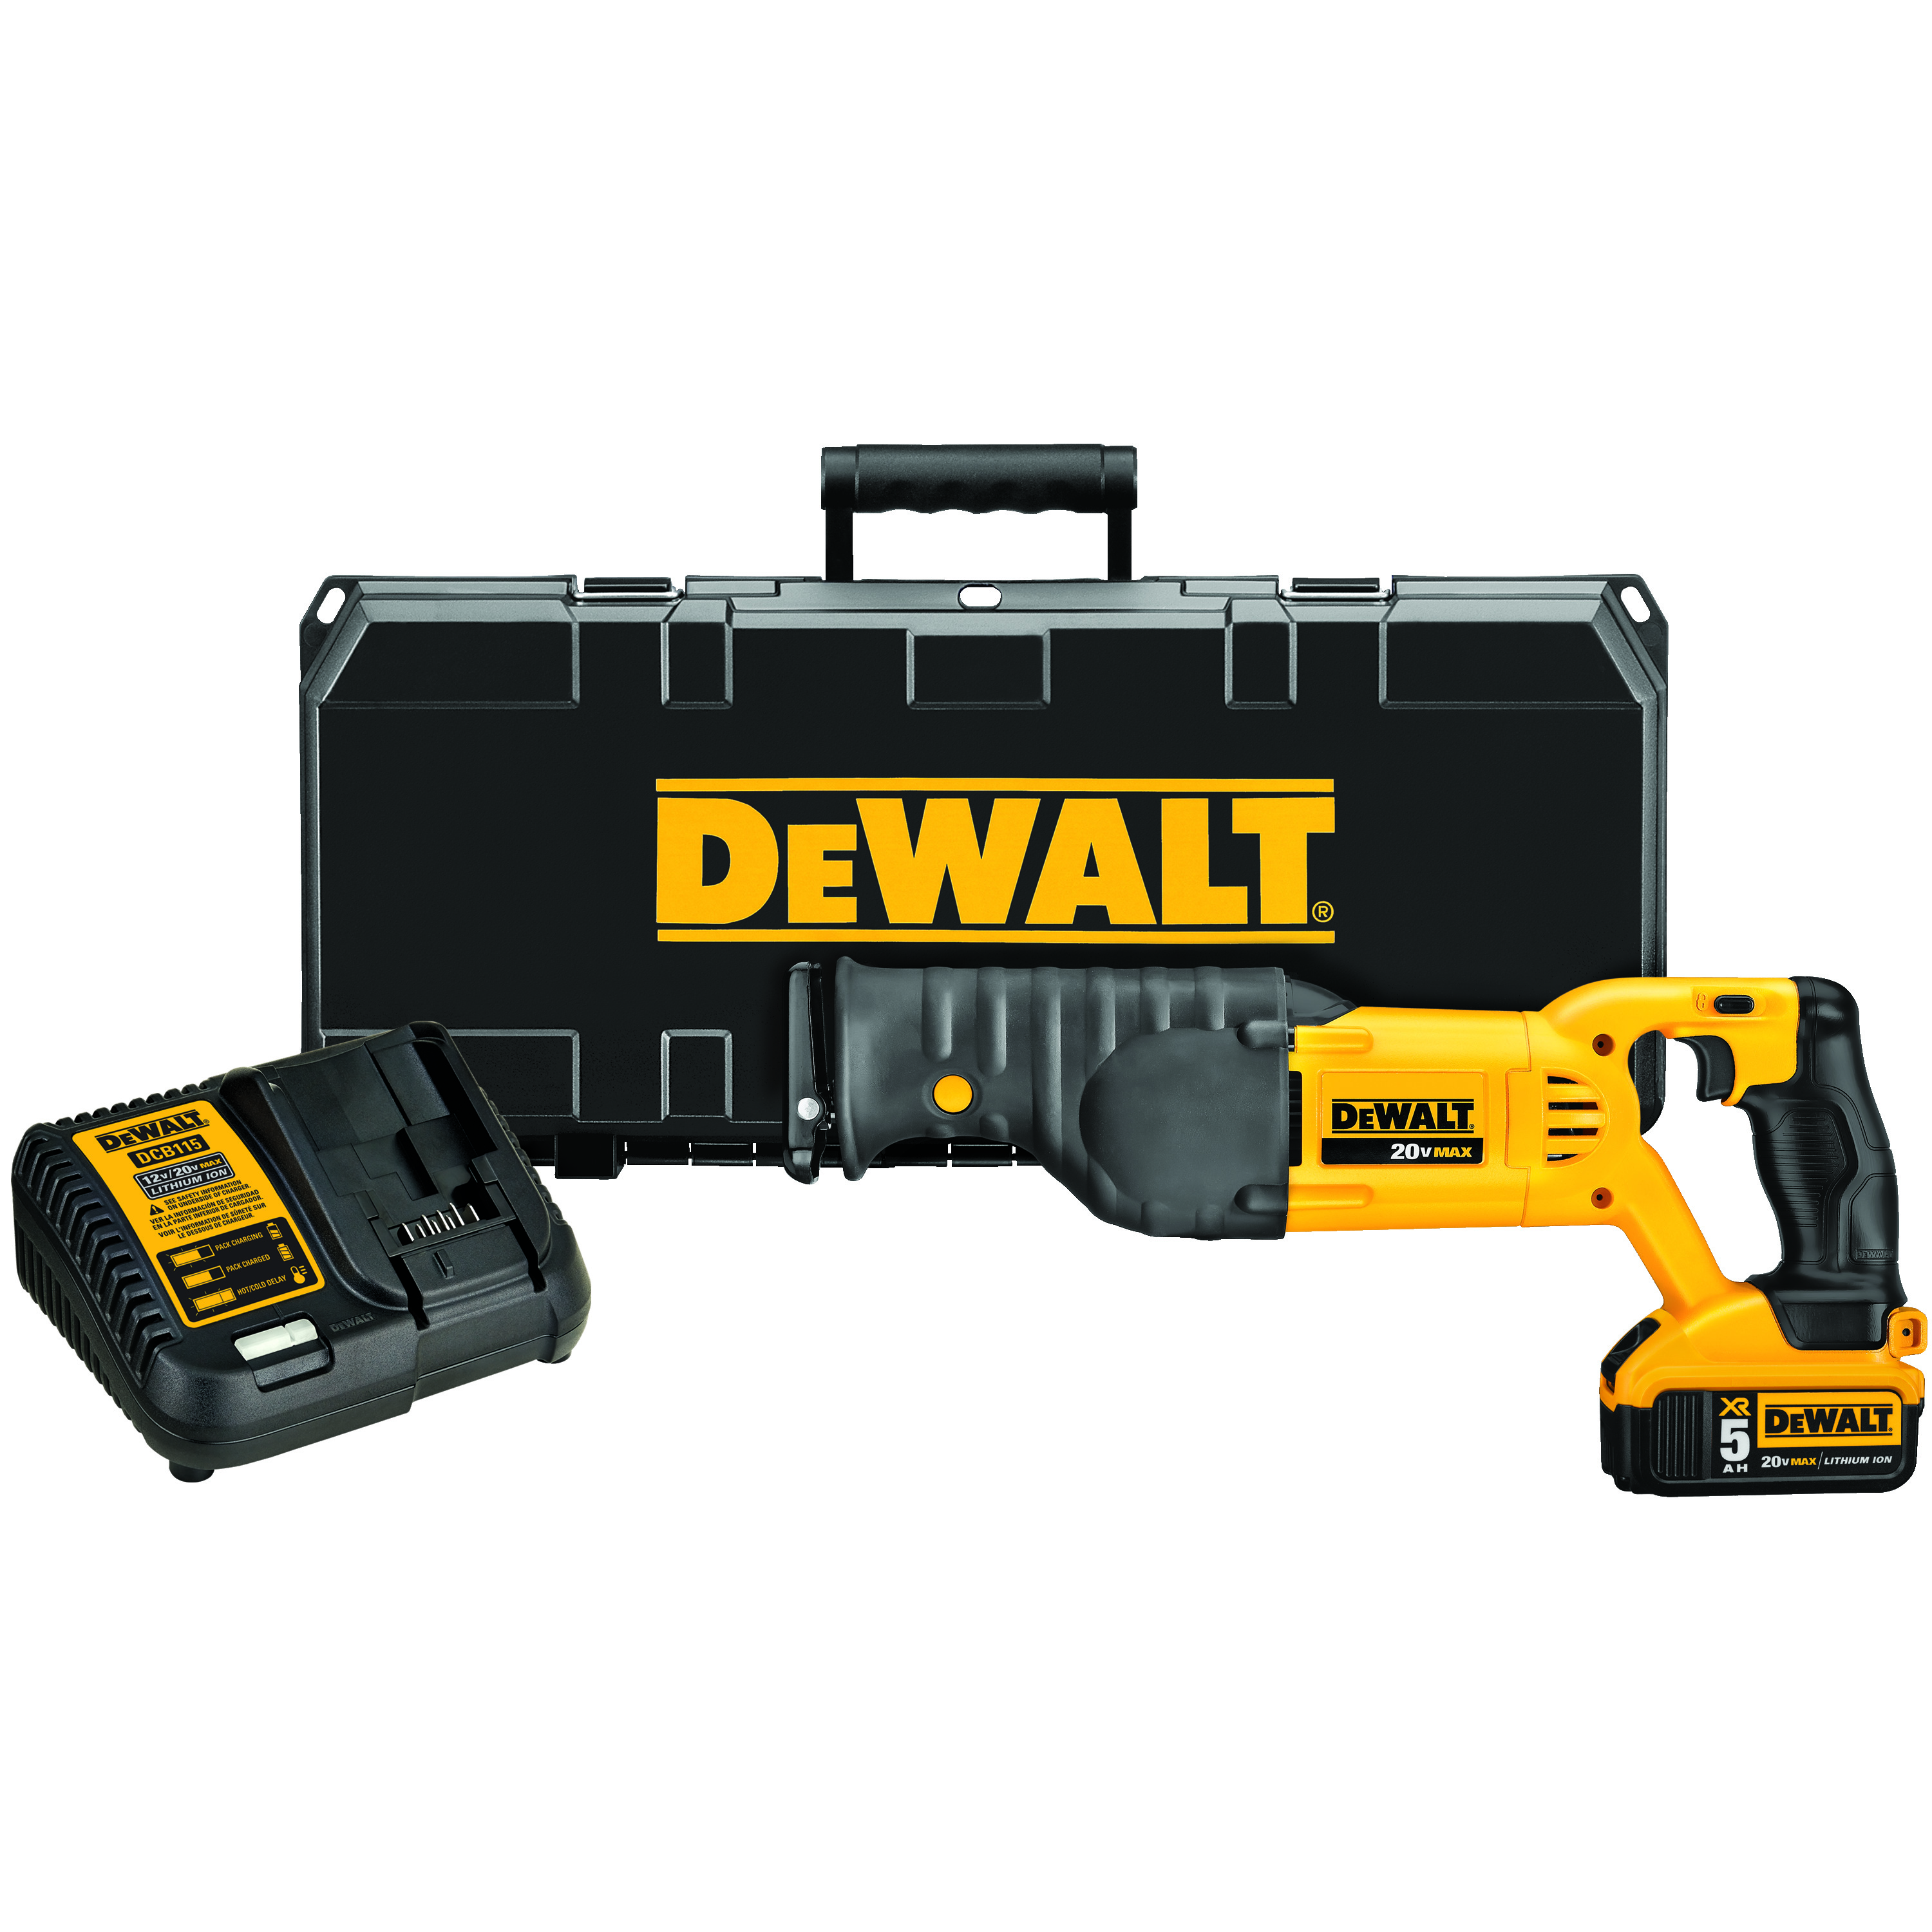 DeWALT® 12V MAX* DCS380P1 Cordless Reciprocating Saw Kit, 1-1/8 in L Stroke, 0 to 3000 spm, Orbital Cut, 20 VDC, 18 in OAL